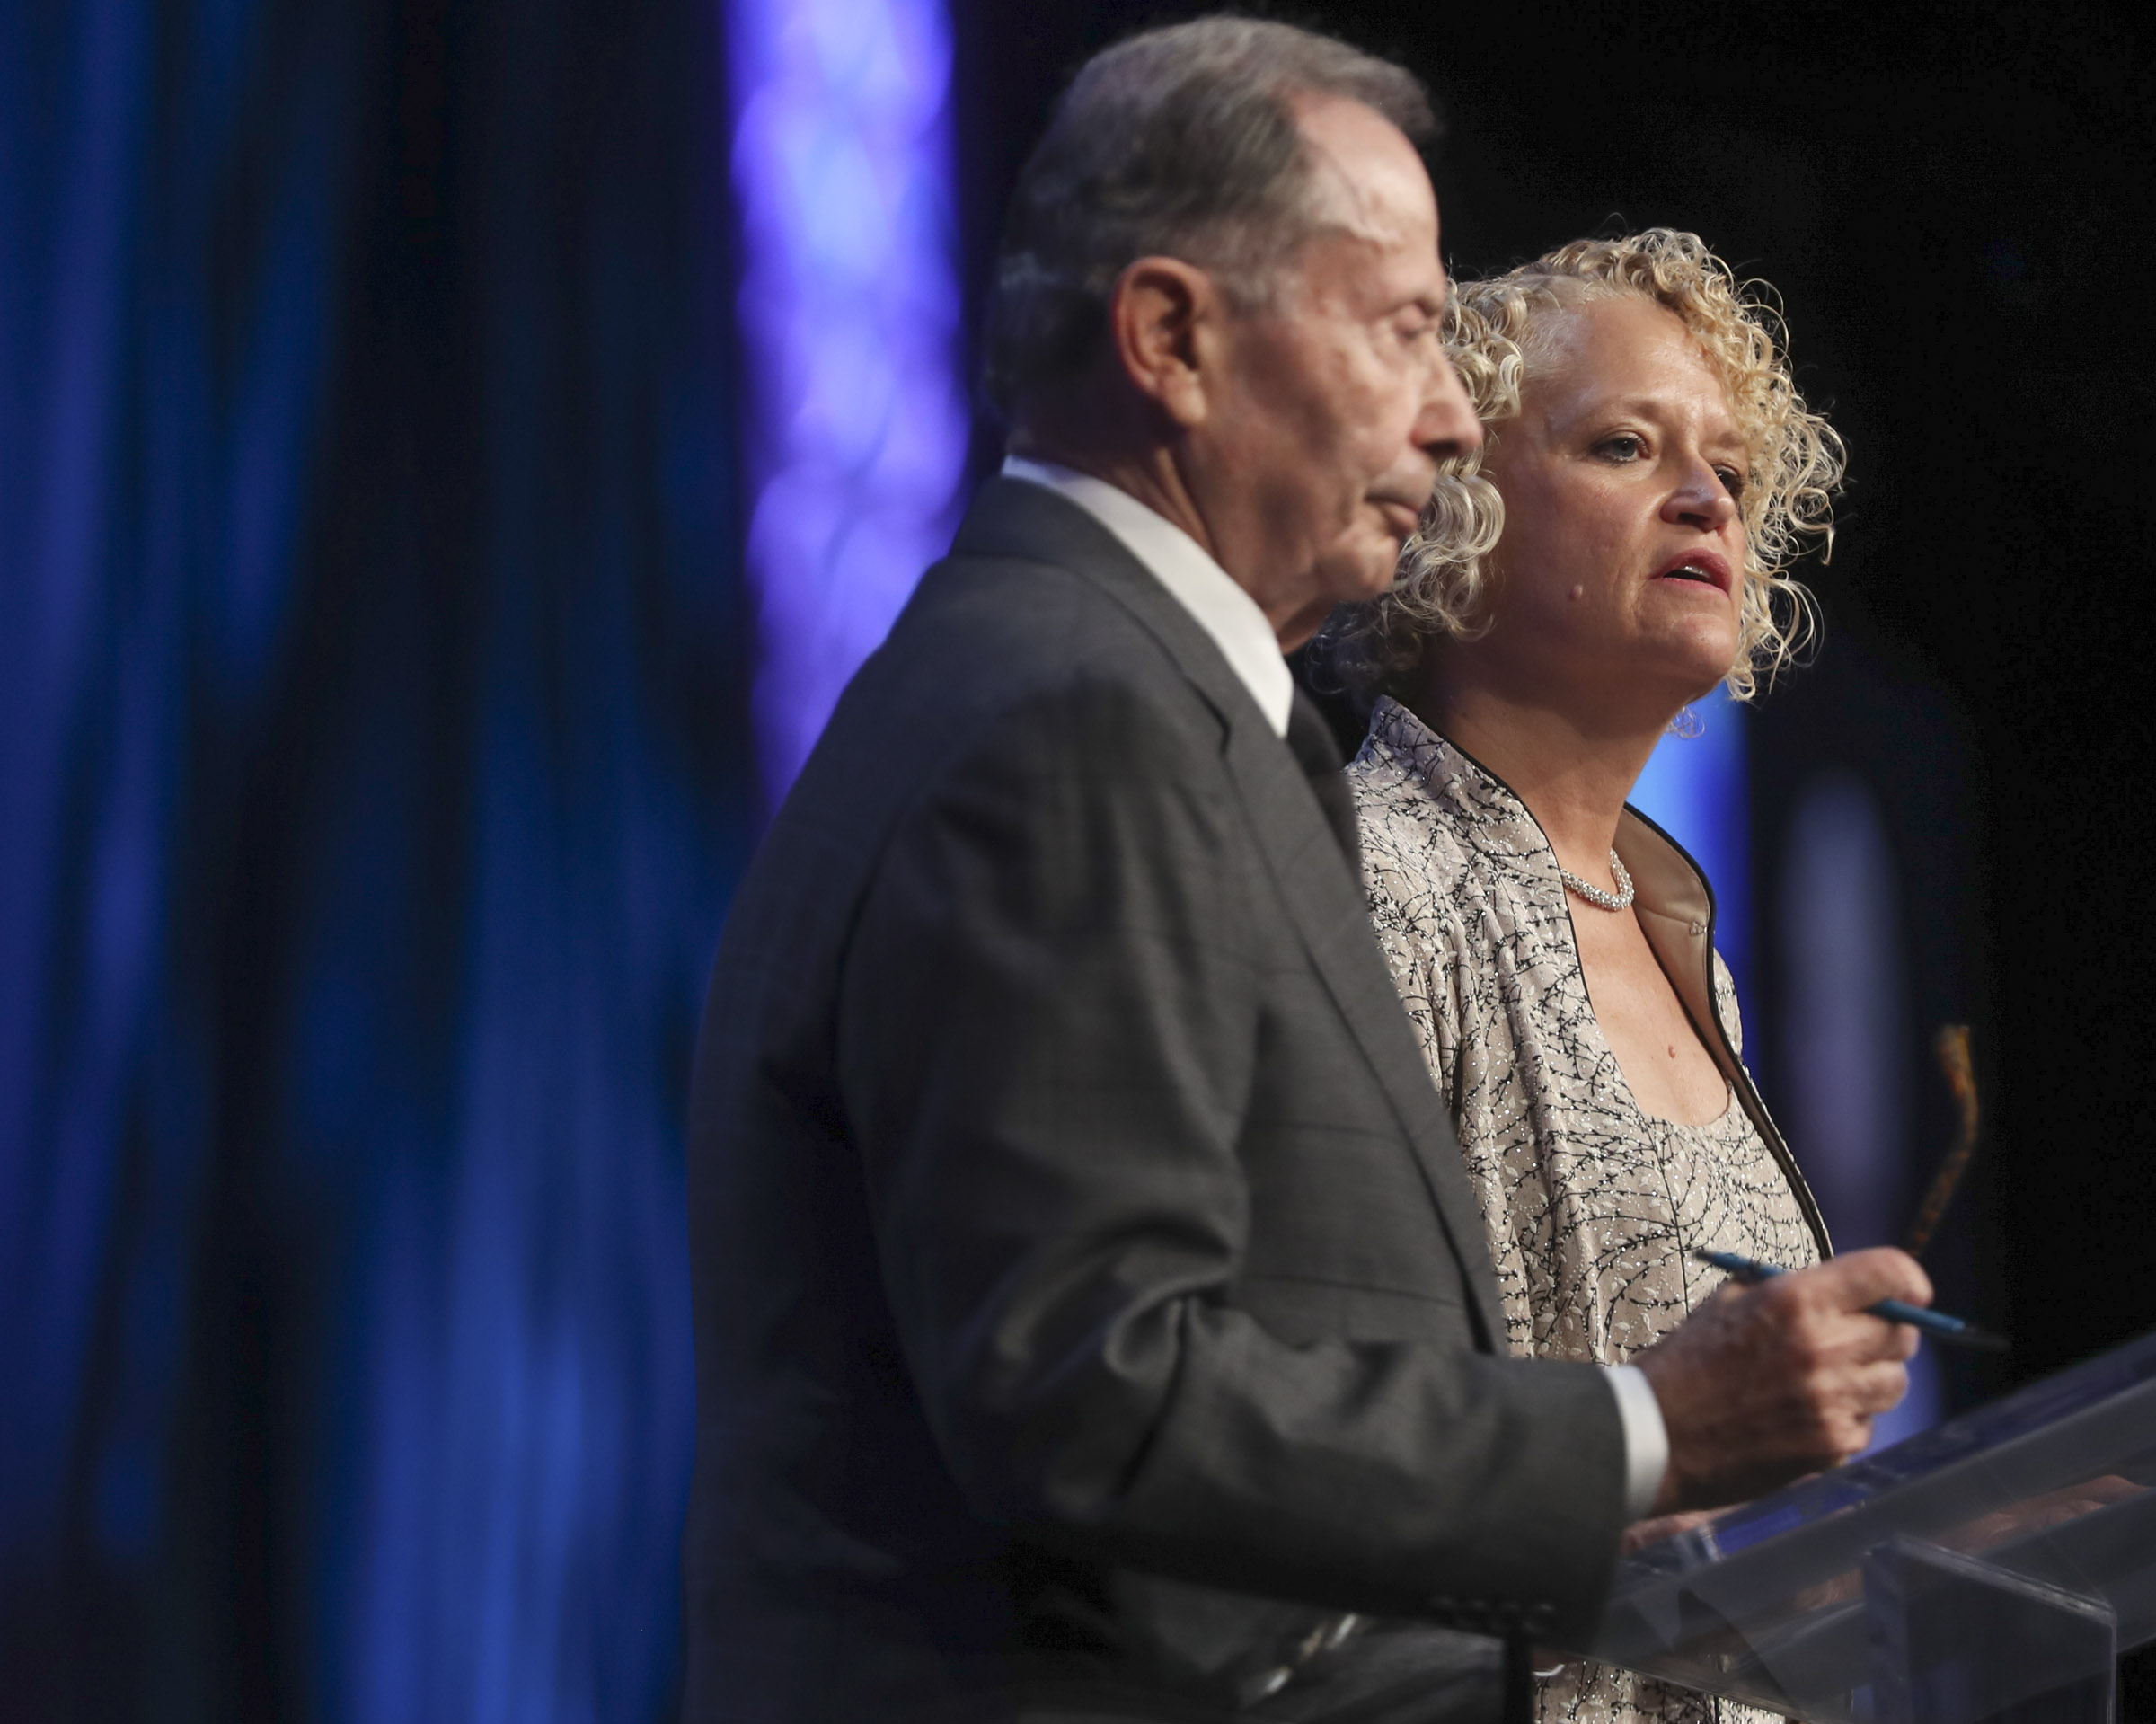 Salt Lake City Mayor Jackie Biskupski is joined by former U.S. Ambassador John Price as they speak during the 68th United Nations Civil Society Conference at the Salt Palace Convention Center on Monday, Aug. 26, 2019.